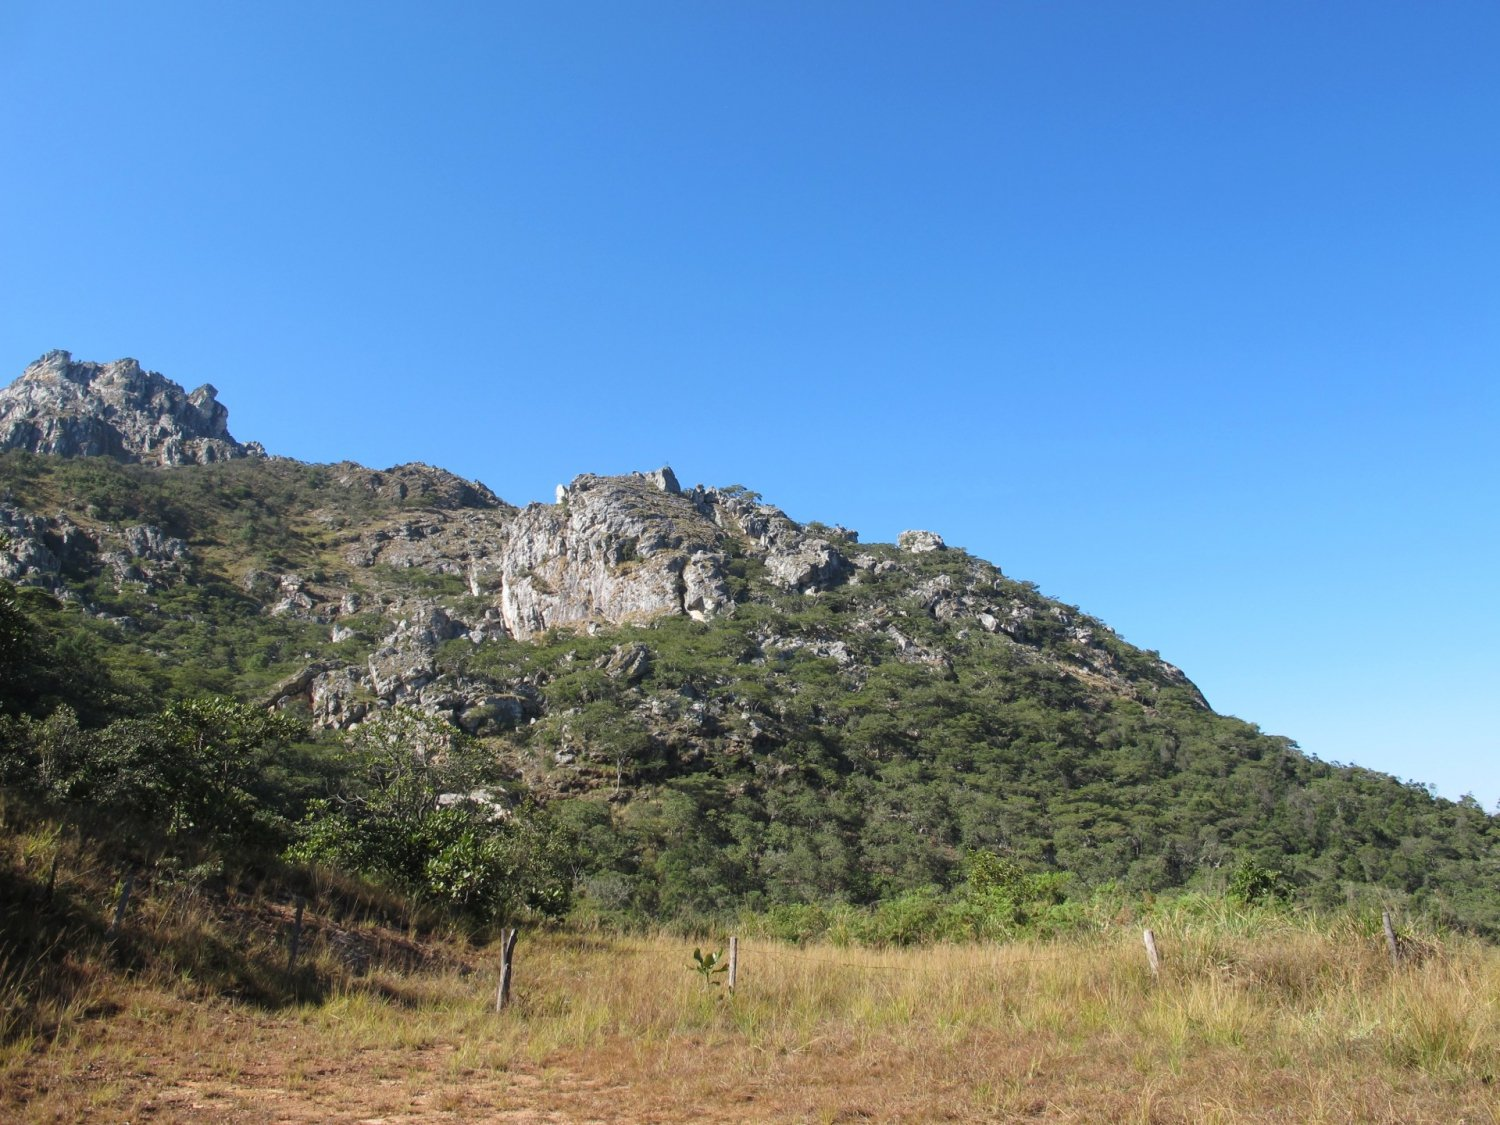 Chipinge And Chimanimani Place of Interest - 7 Reasons To Visit